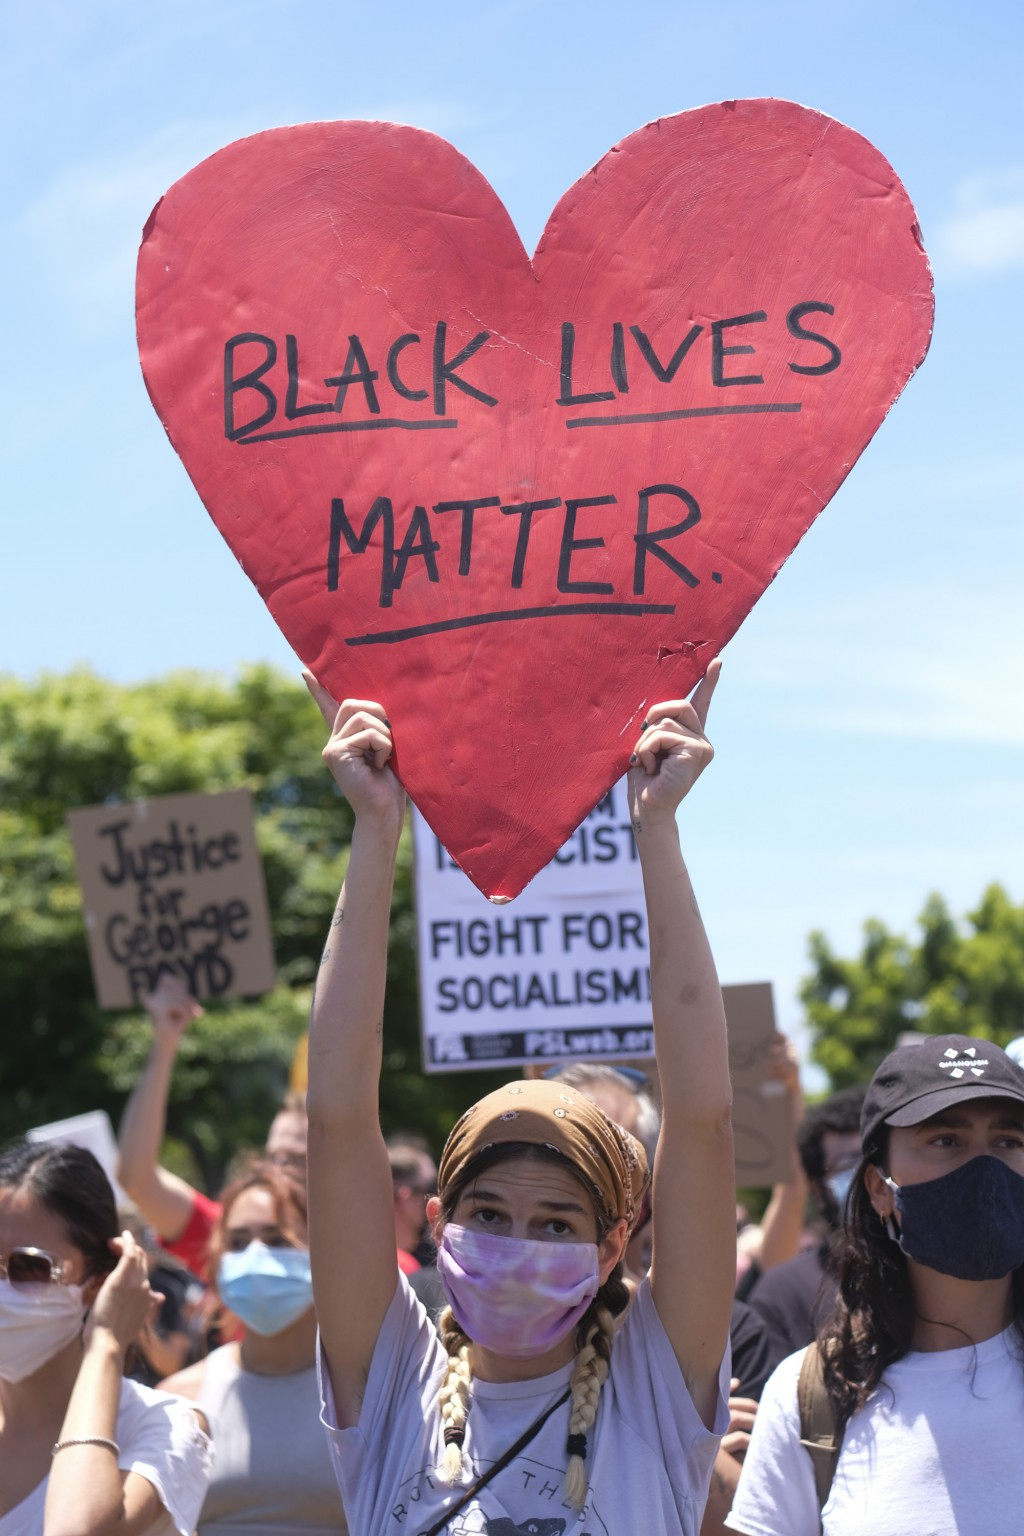 A protester holds a sign during a protest in Los Angeles, Saturday, May 30, 2020. Demonstrators took to the streets of Los Angeles to protest the deat...